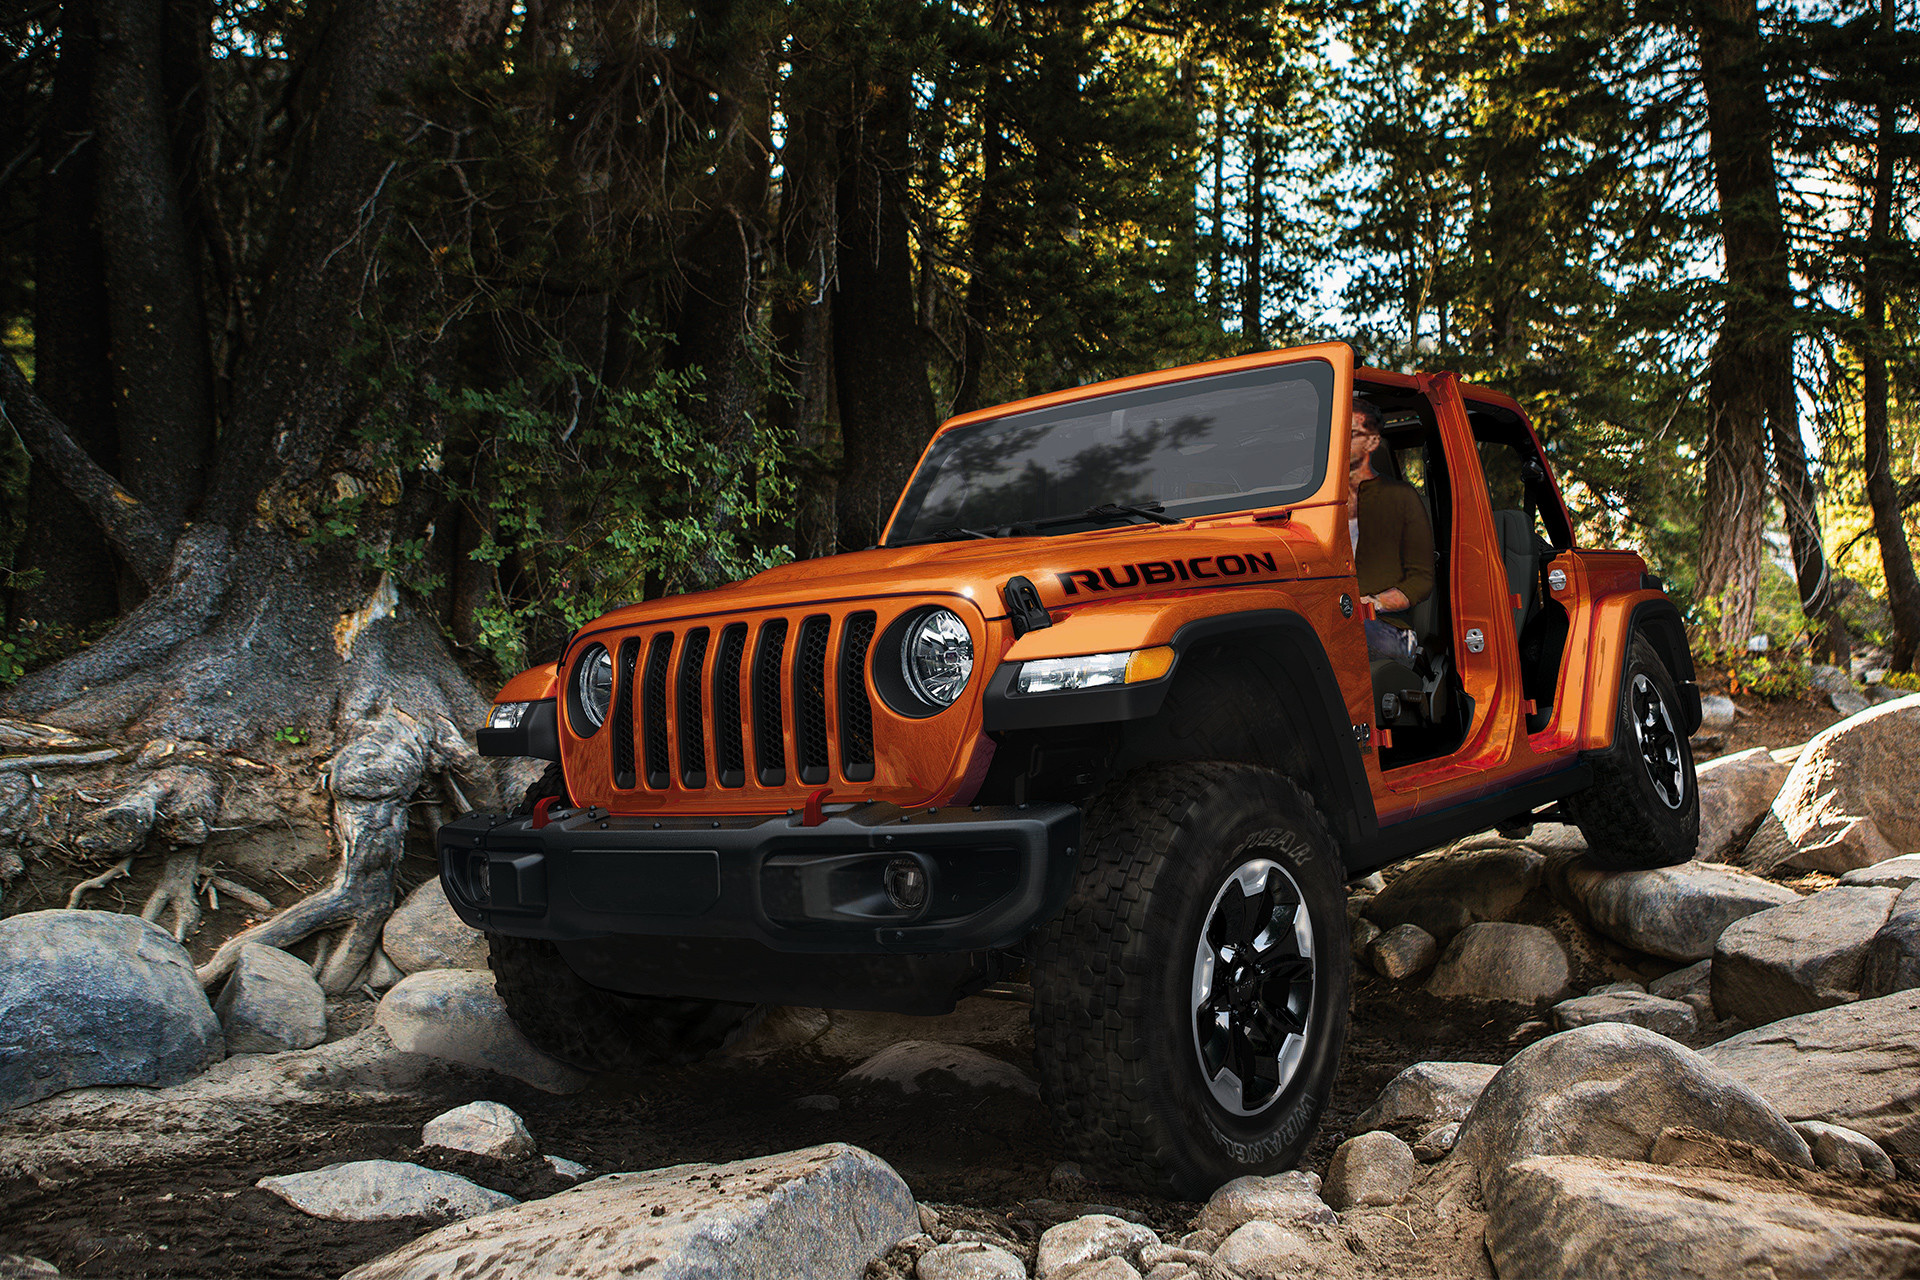 2019 Jeep Wrangler Rubicon off-roading, shown in orange